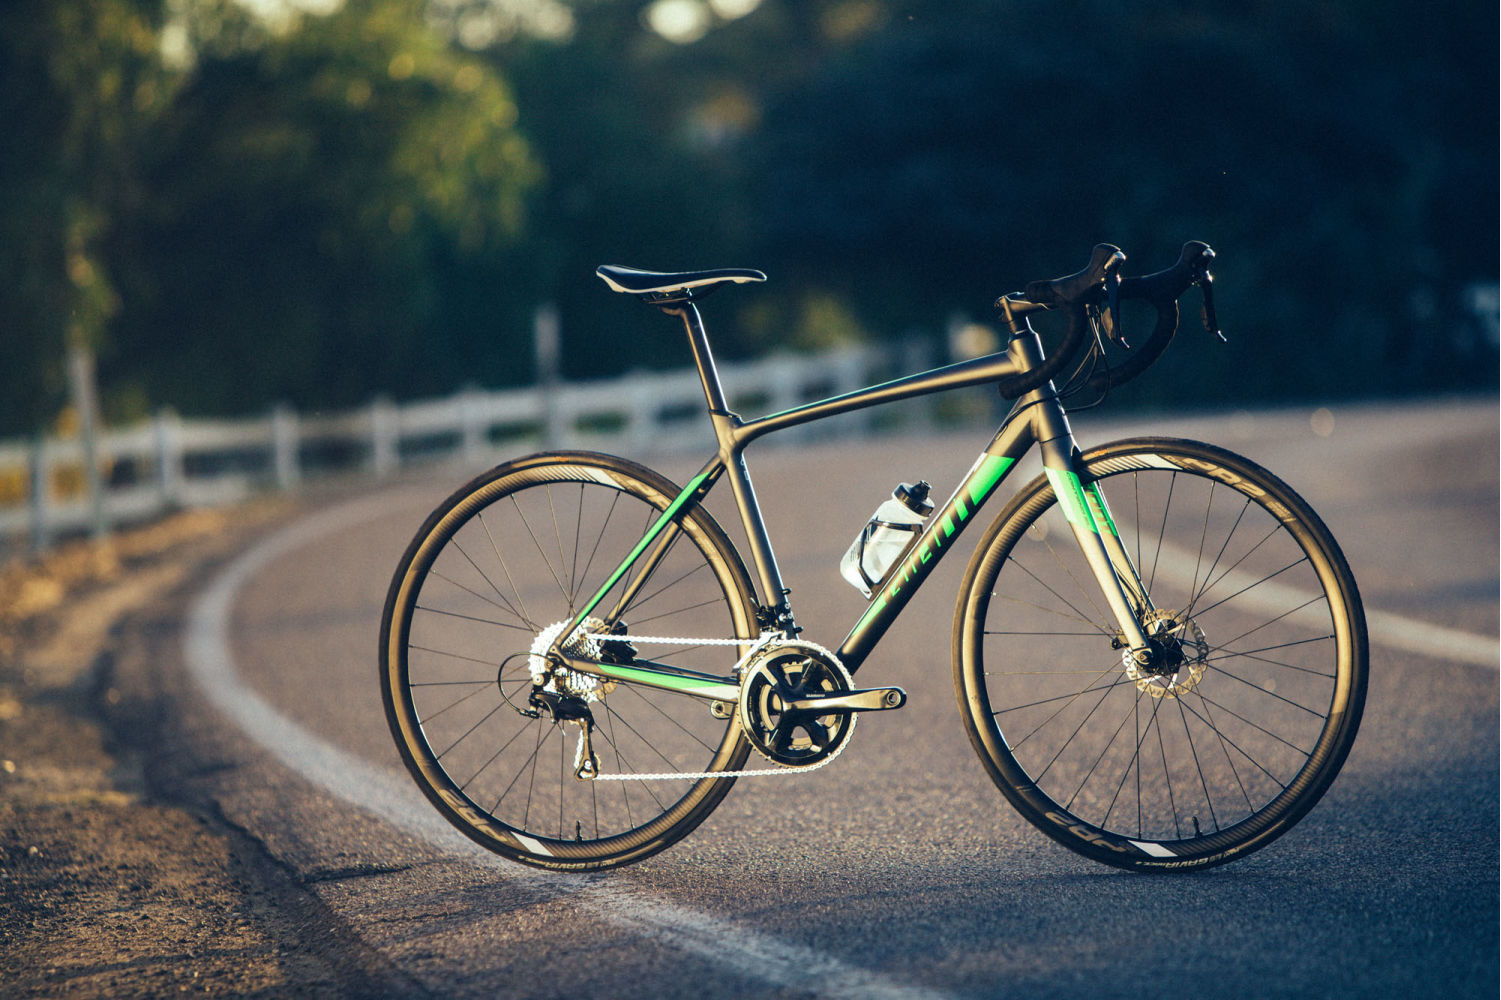 537b8c028cd Gallery Image. The 2018 Contend SL Disc ...